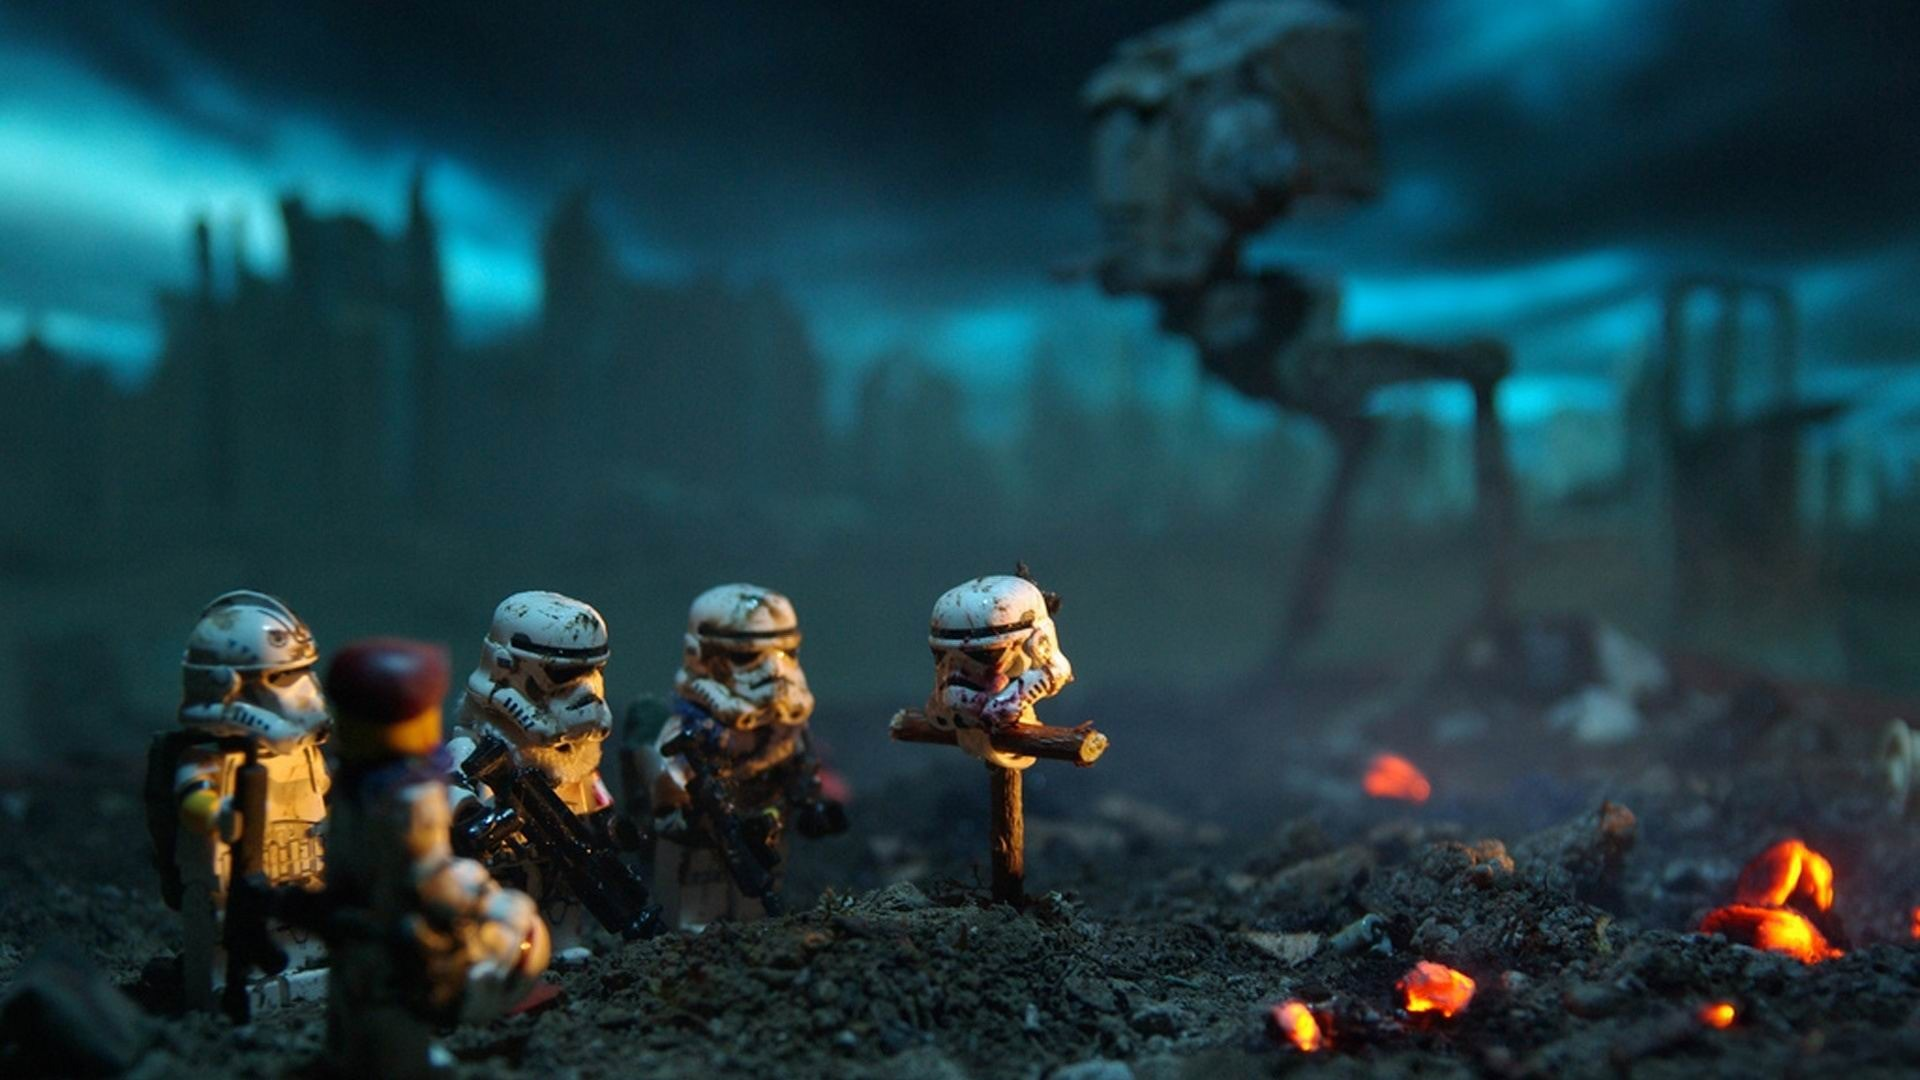 … backgrounds wallpaper abyss; lego star wars stormtroopers creative  graphic design wallpapers …